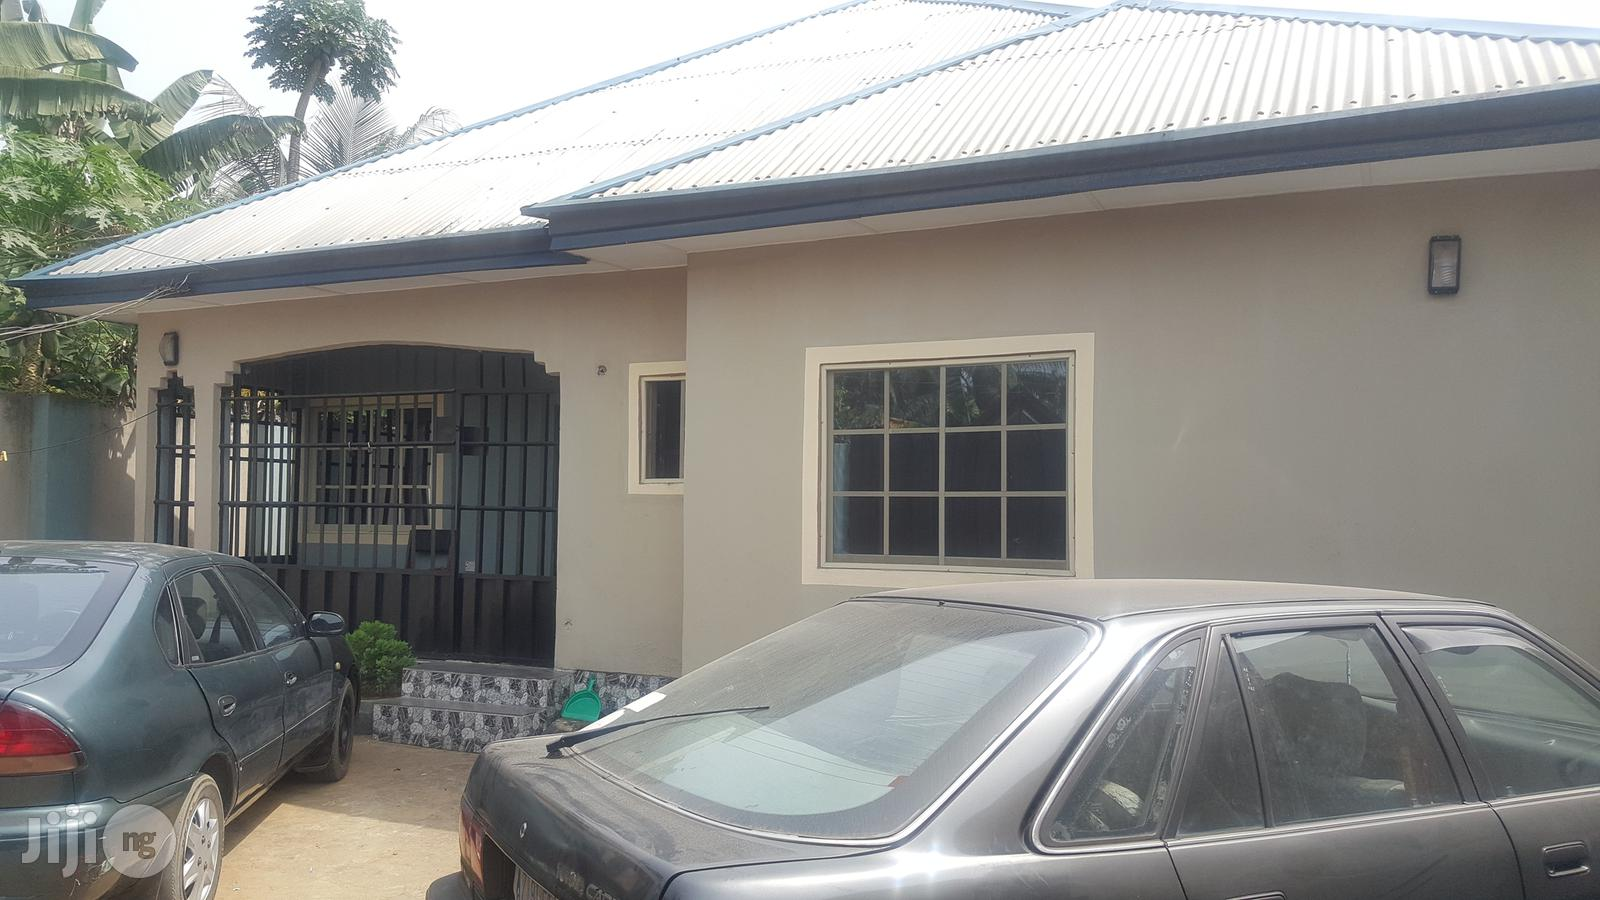 3 Bedrooms Flat And 1 Bedroom Flat Bungalow Nung Oku In Uyo For Sale